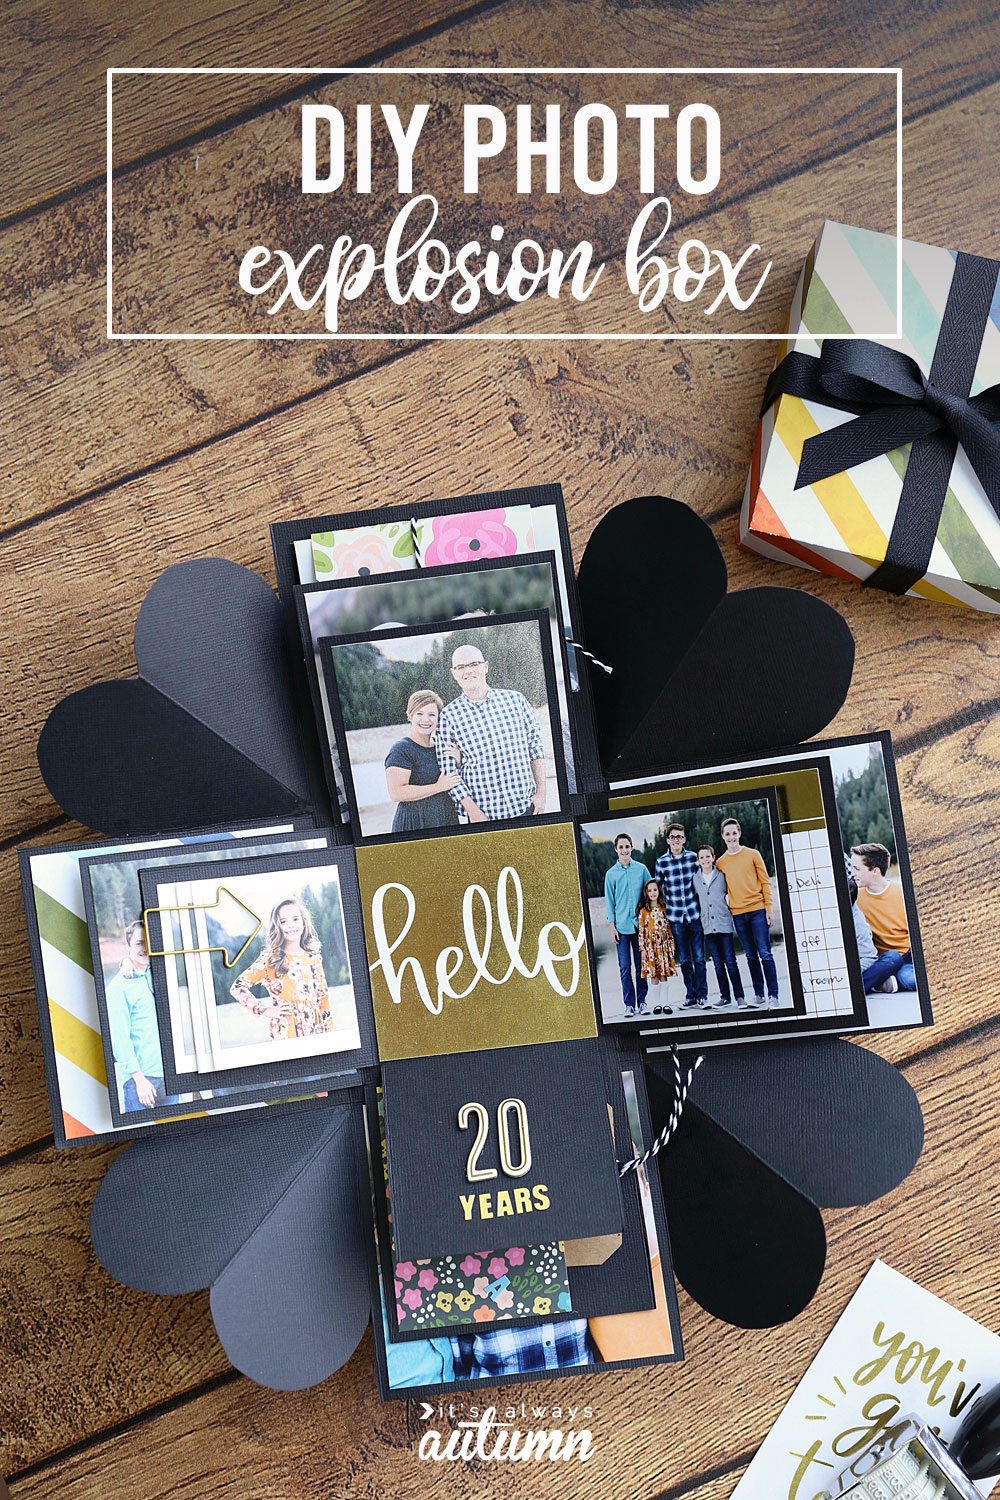 DIY photo explosion box that opens up when you take the lid off